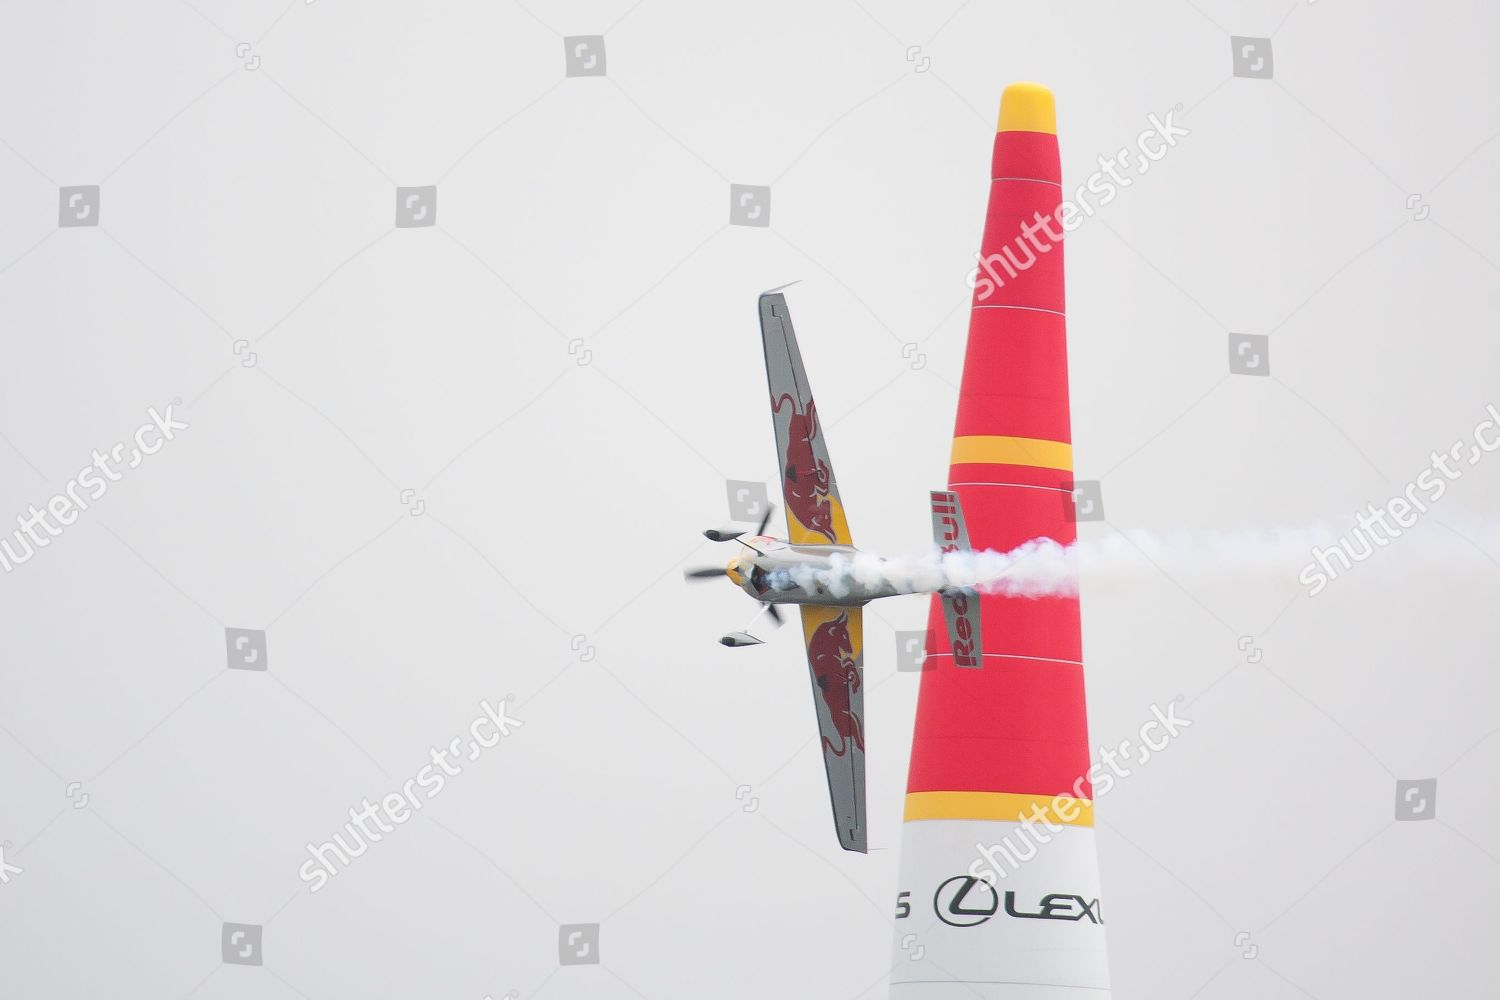 3rd round popular Red Bull Air Race Editorial Stock Photo